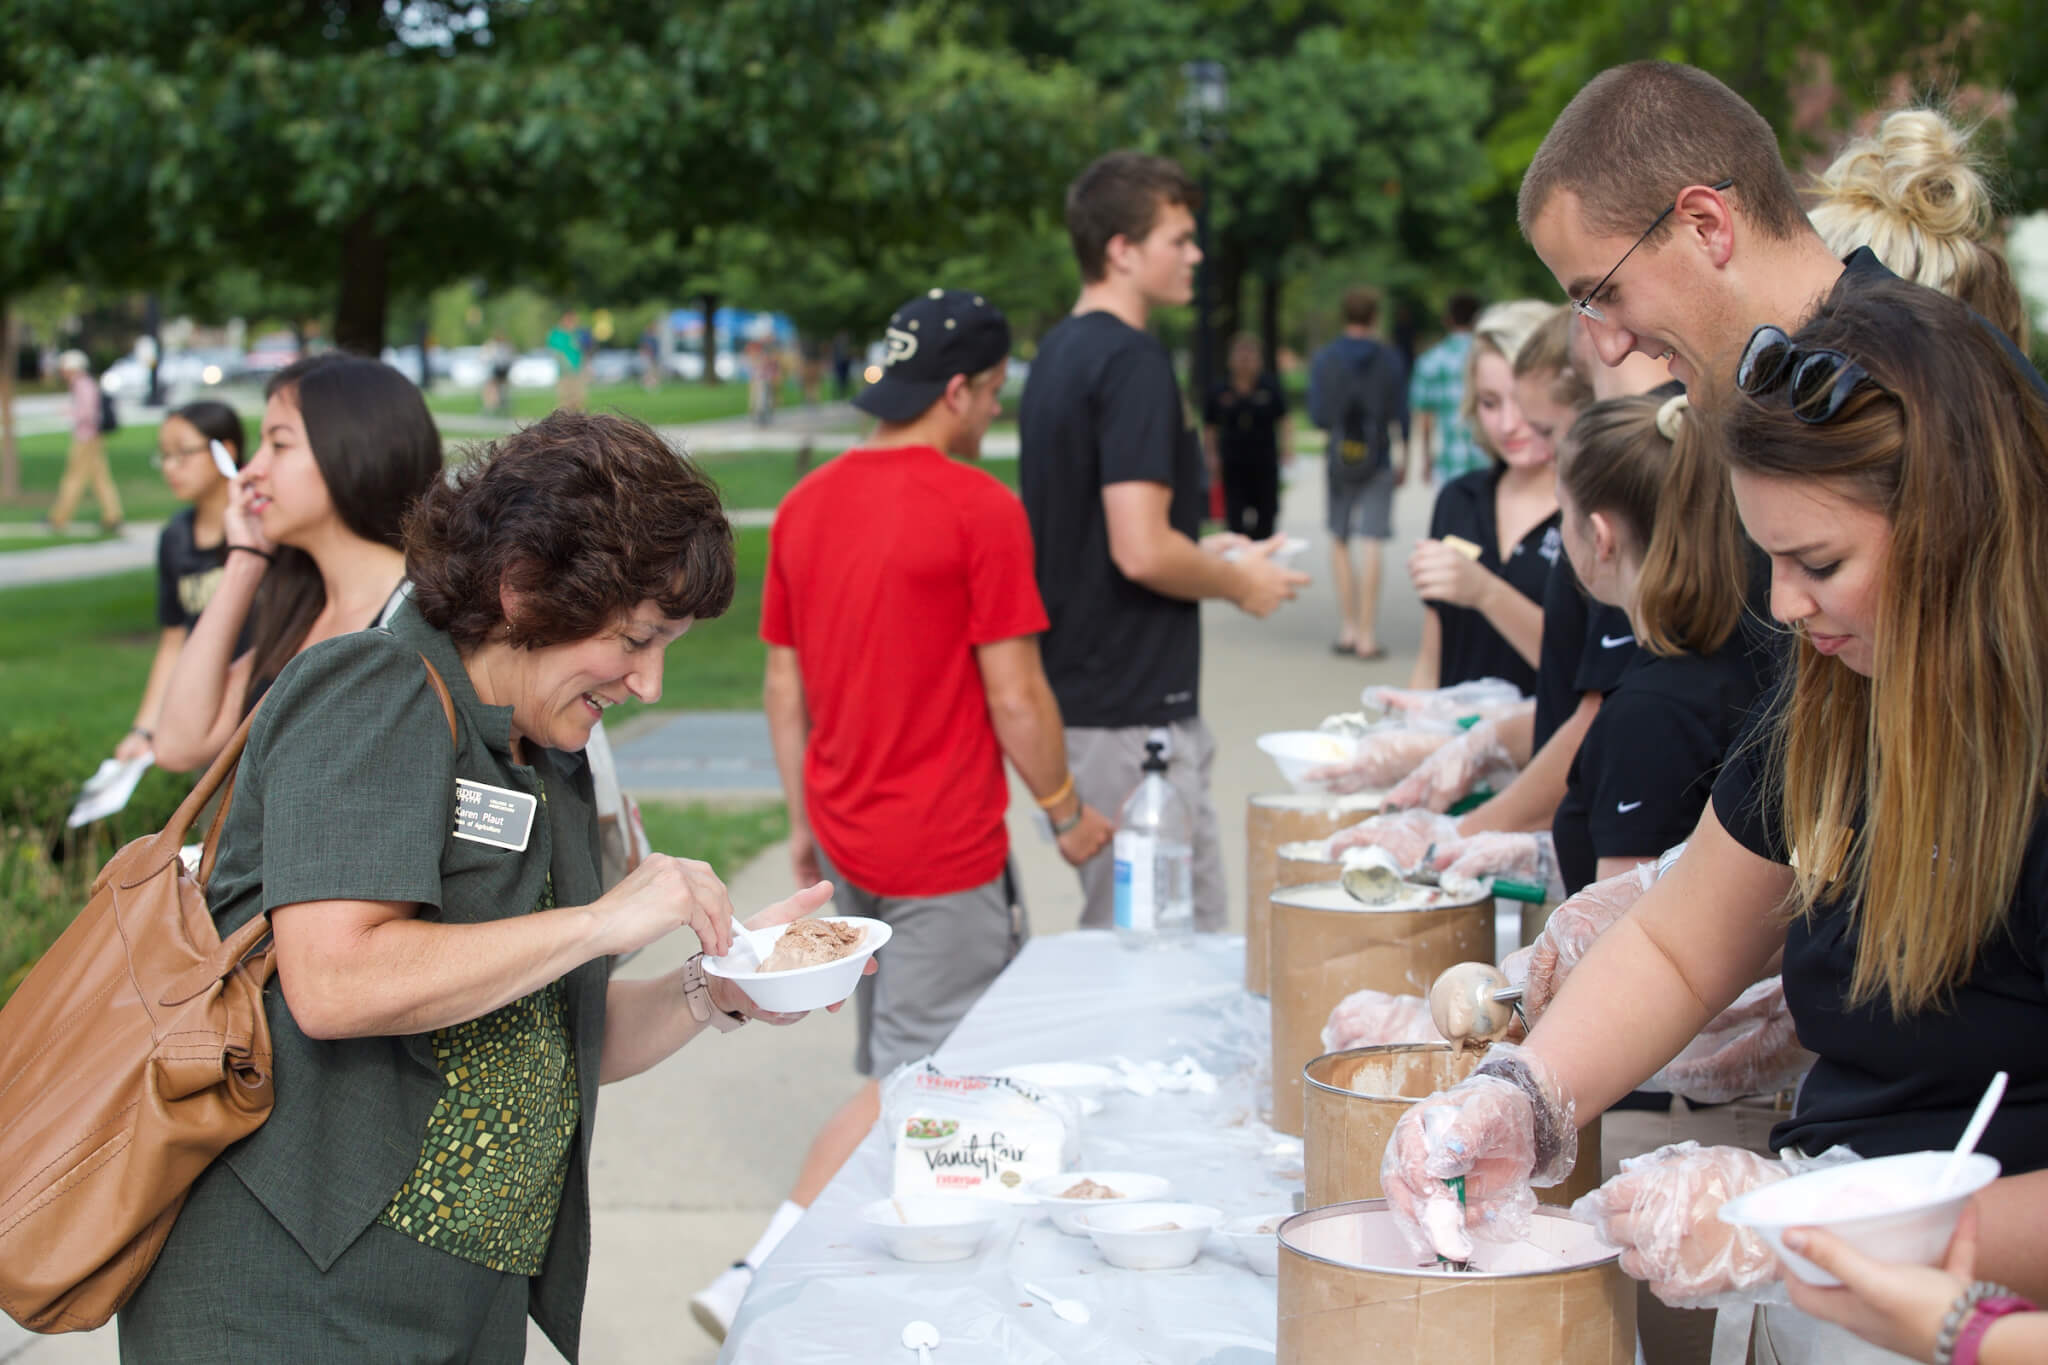 Schwartz serving ice cream to Dean Plaut and others during the Ice Cream Social